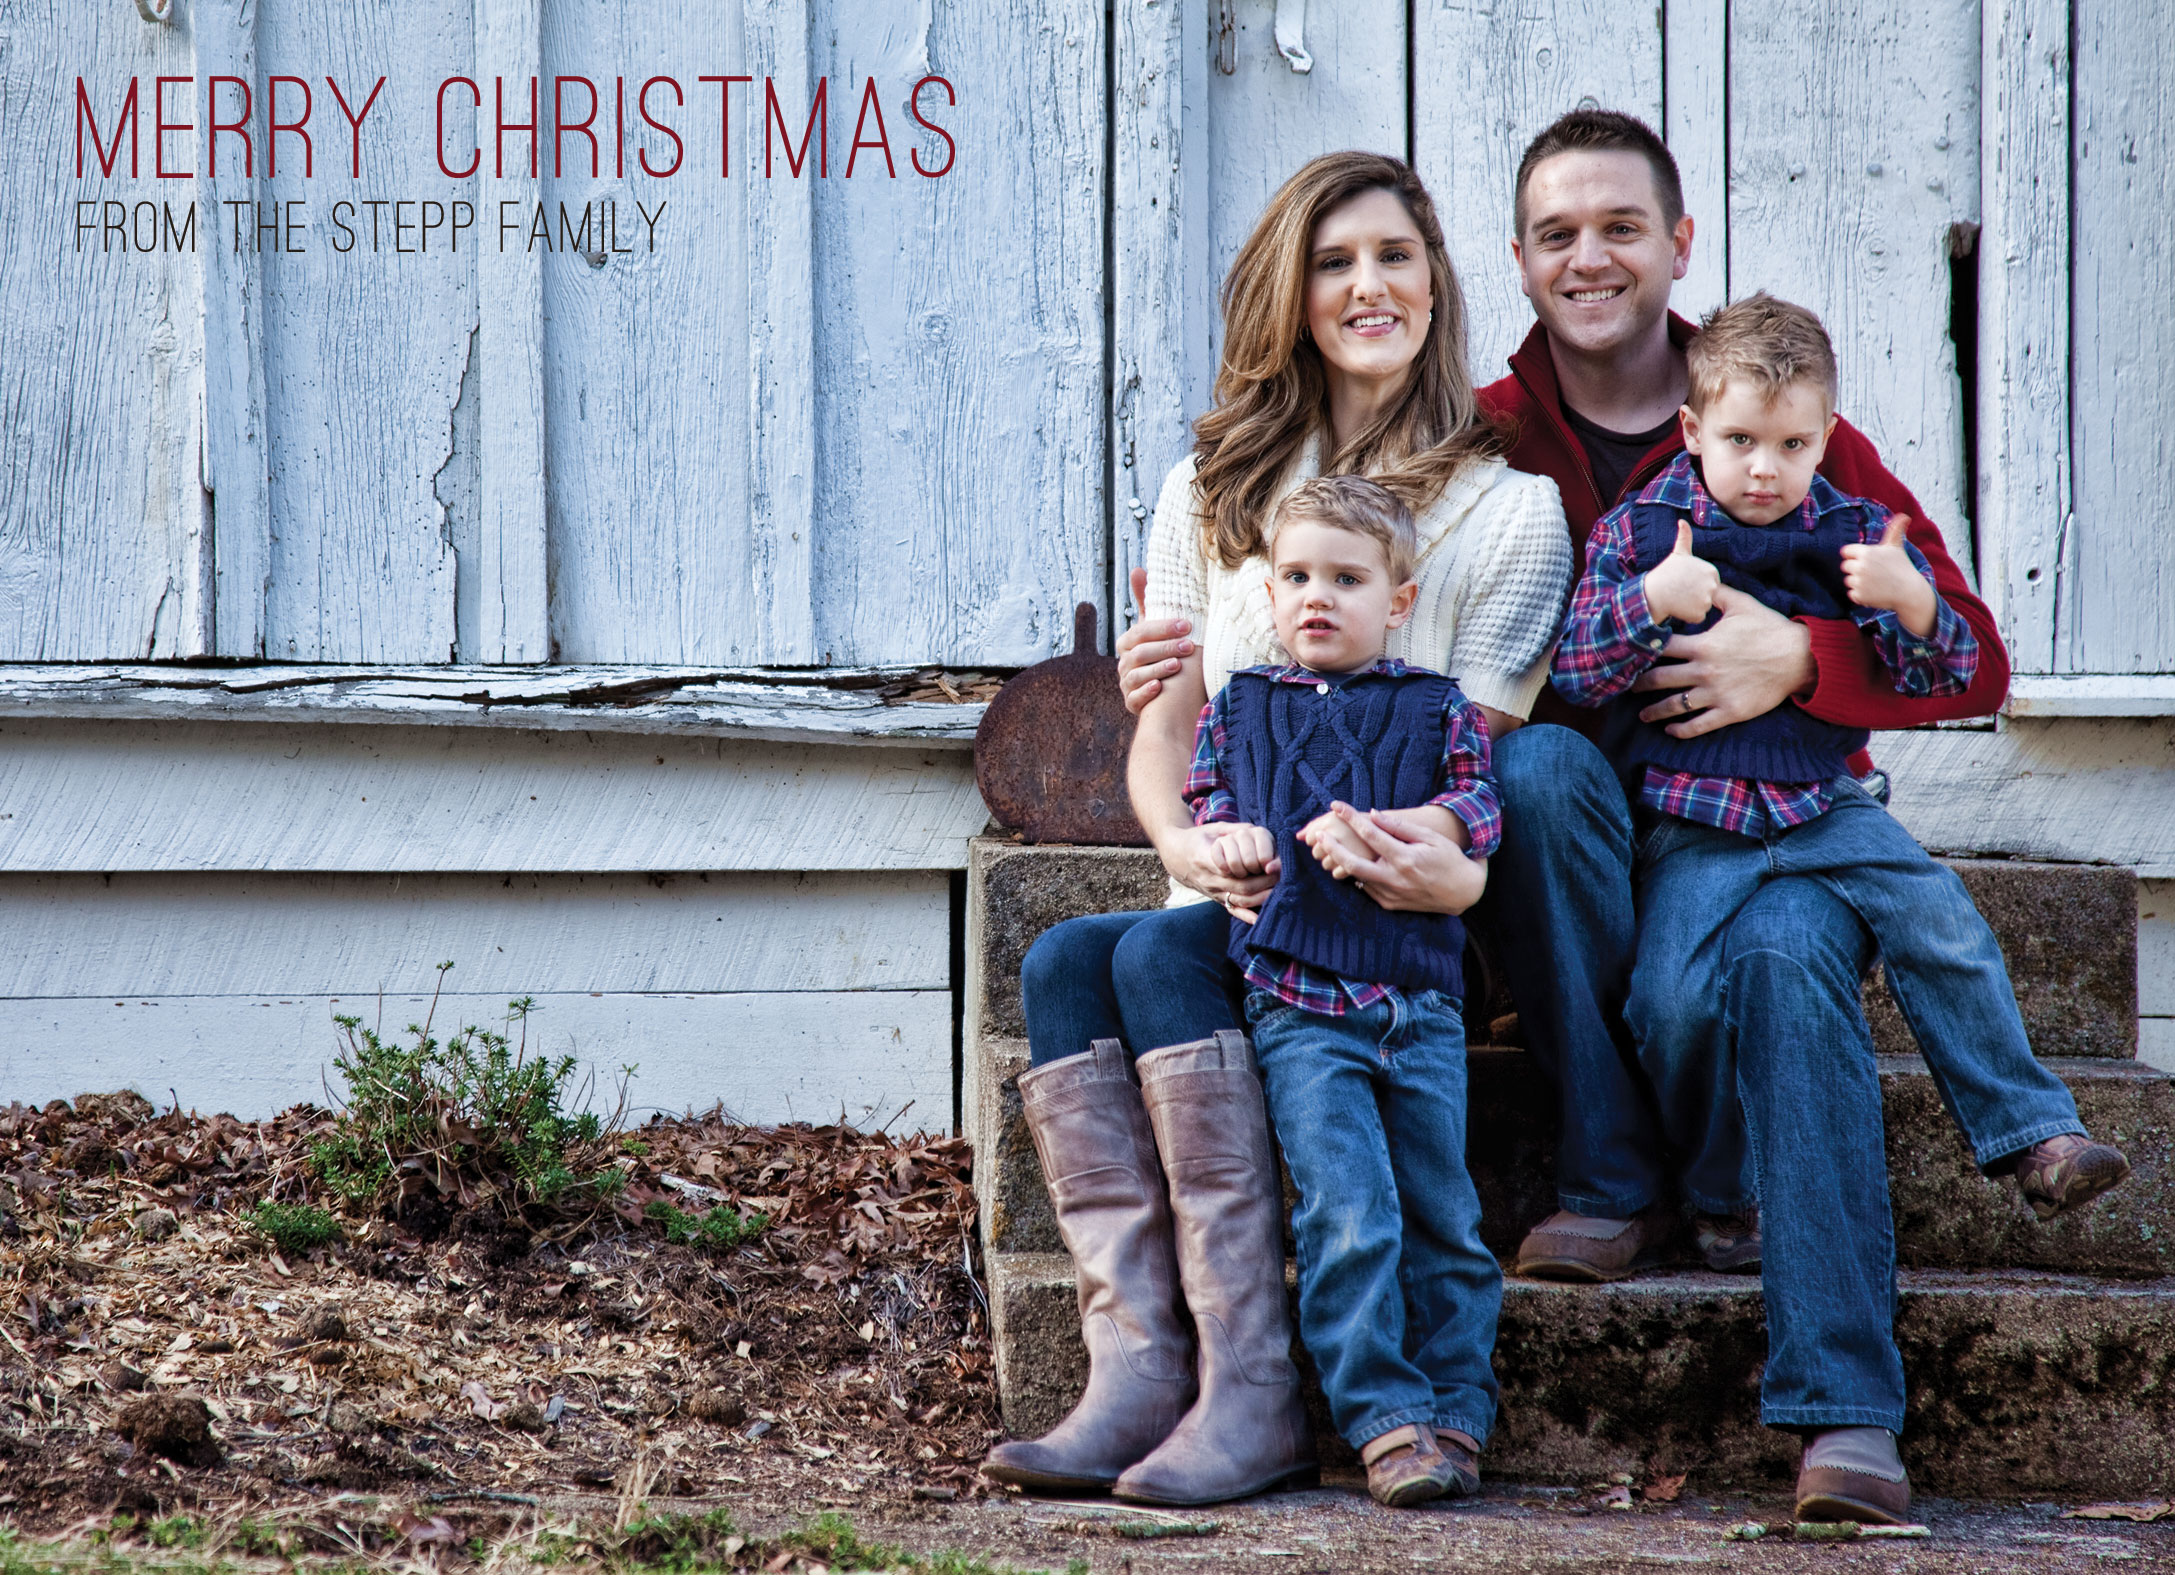 Christmas Card 2012 (Web)